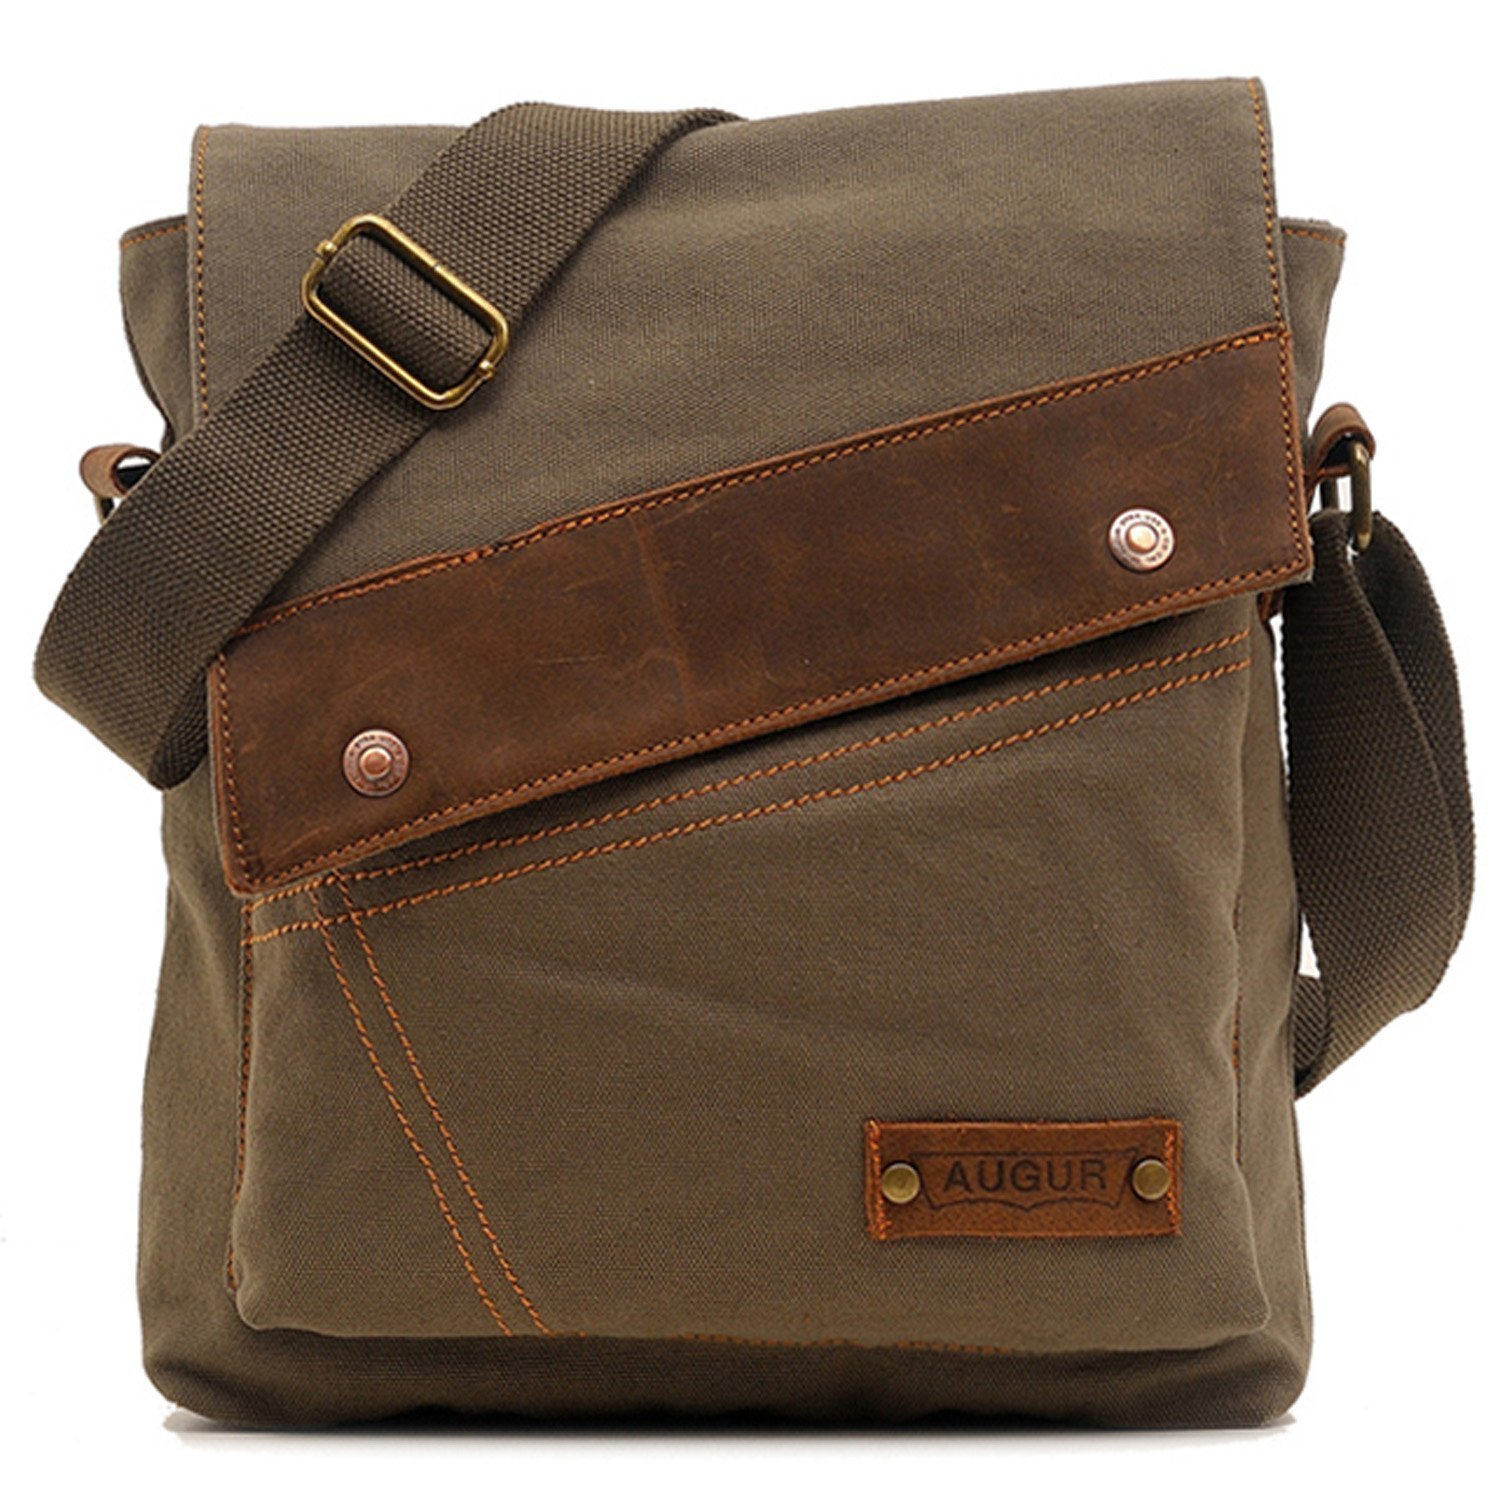 e9b98810cbb Amazon.com   Aibag Messenger Bag, Vintage Small Canvas Shoulder Crossbody  Purse (Army Green)   Messenger Bags